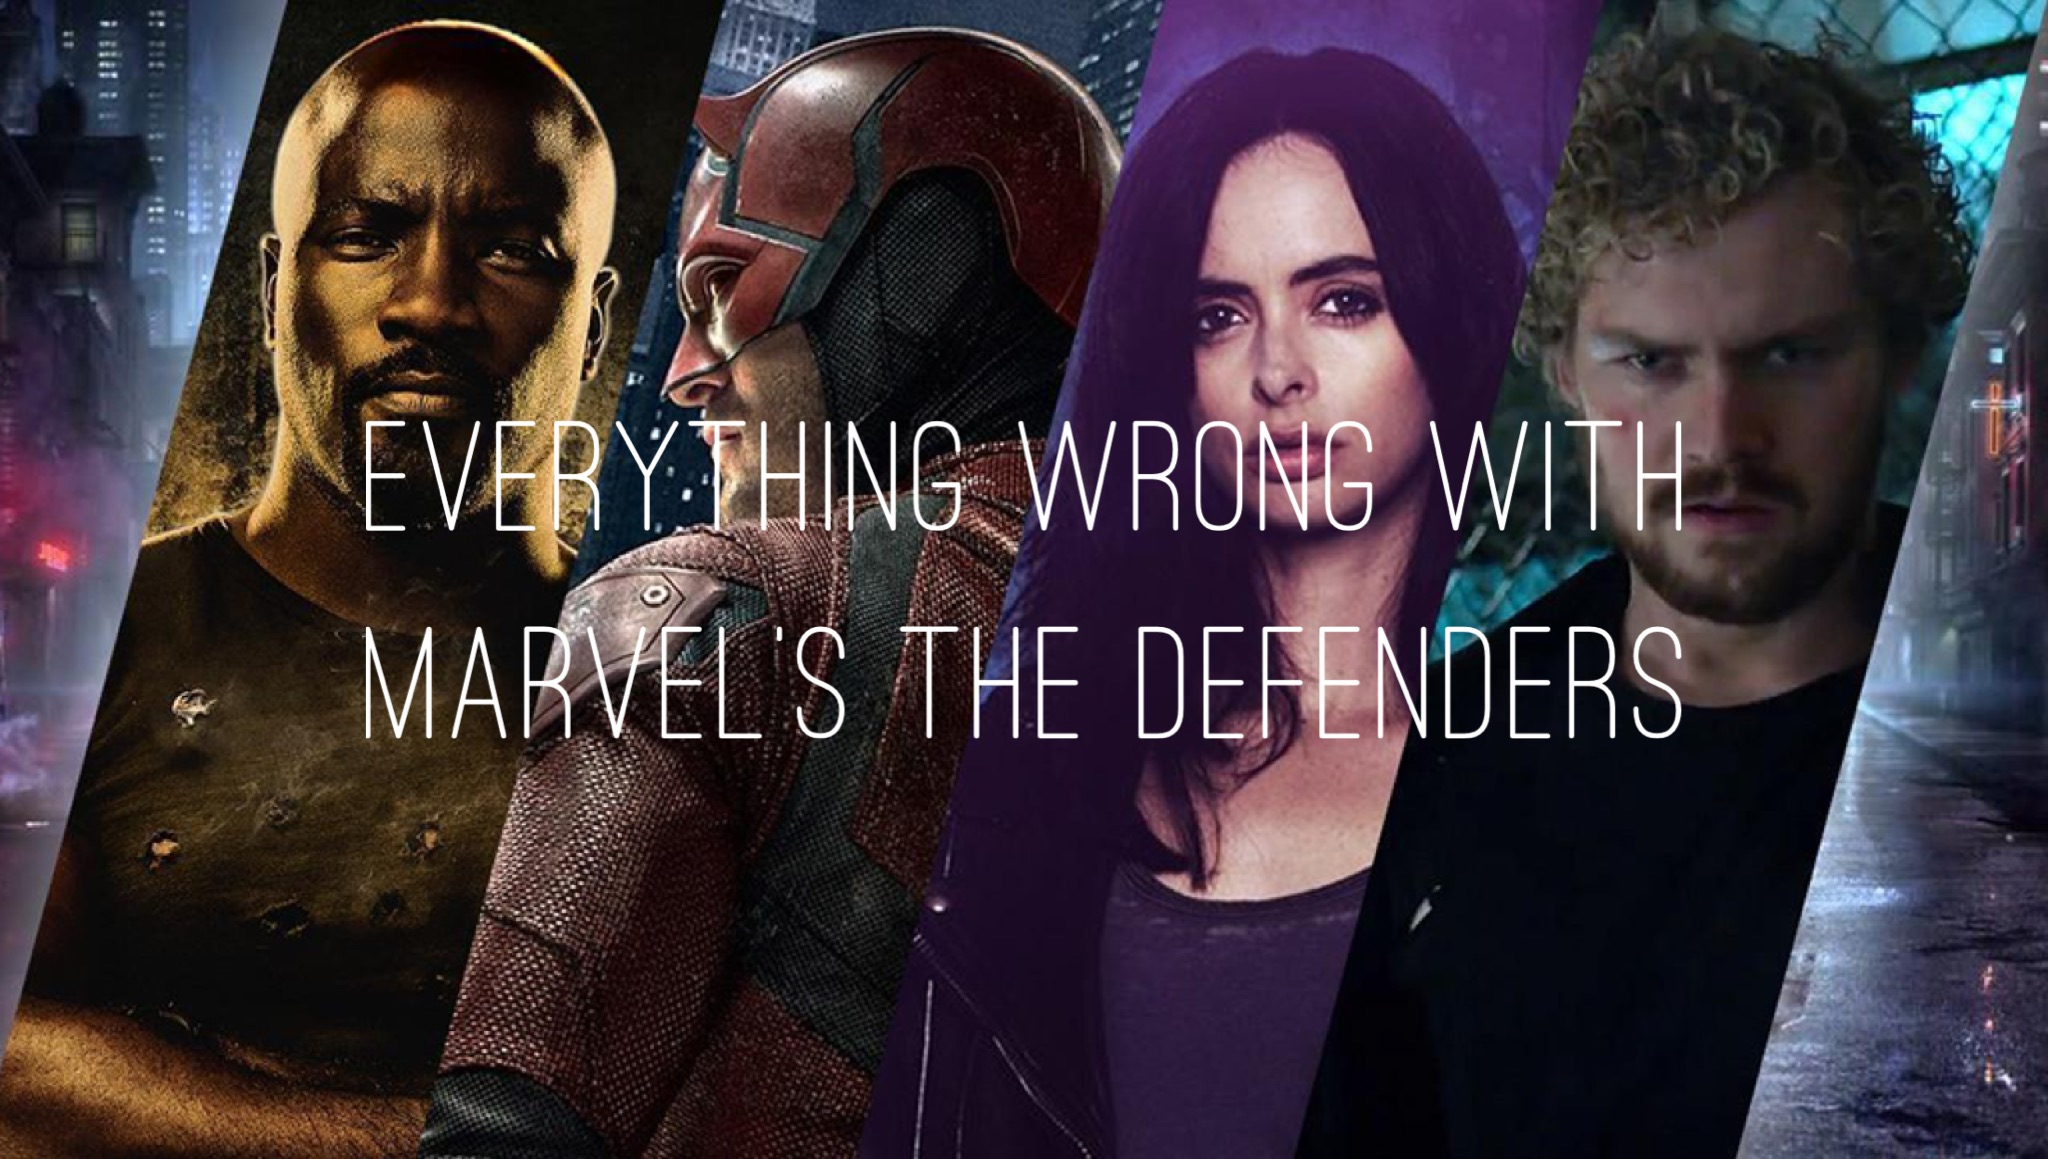 Everything wrong with Marvel's The Defenders